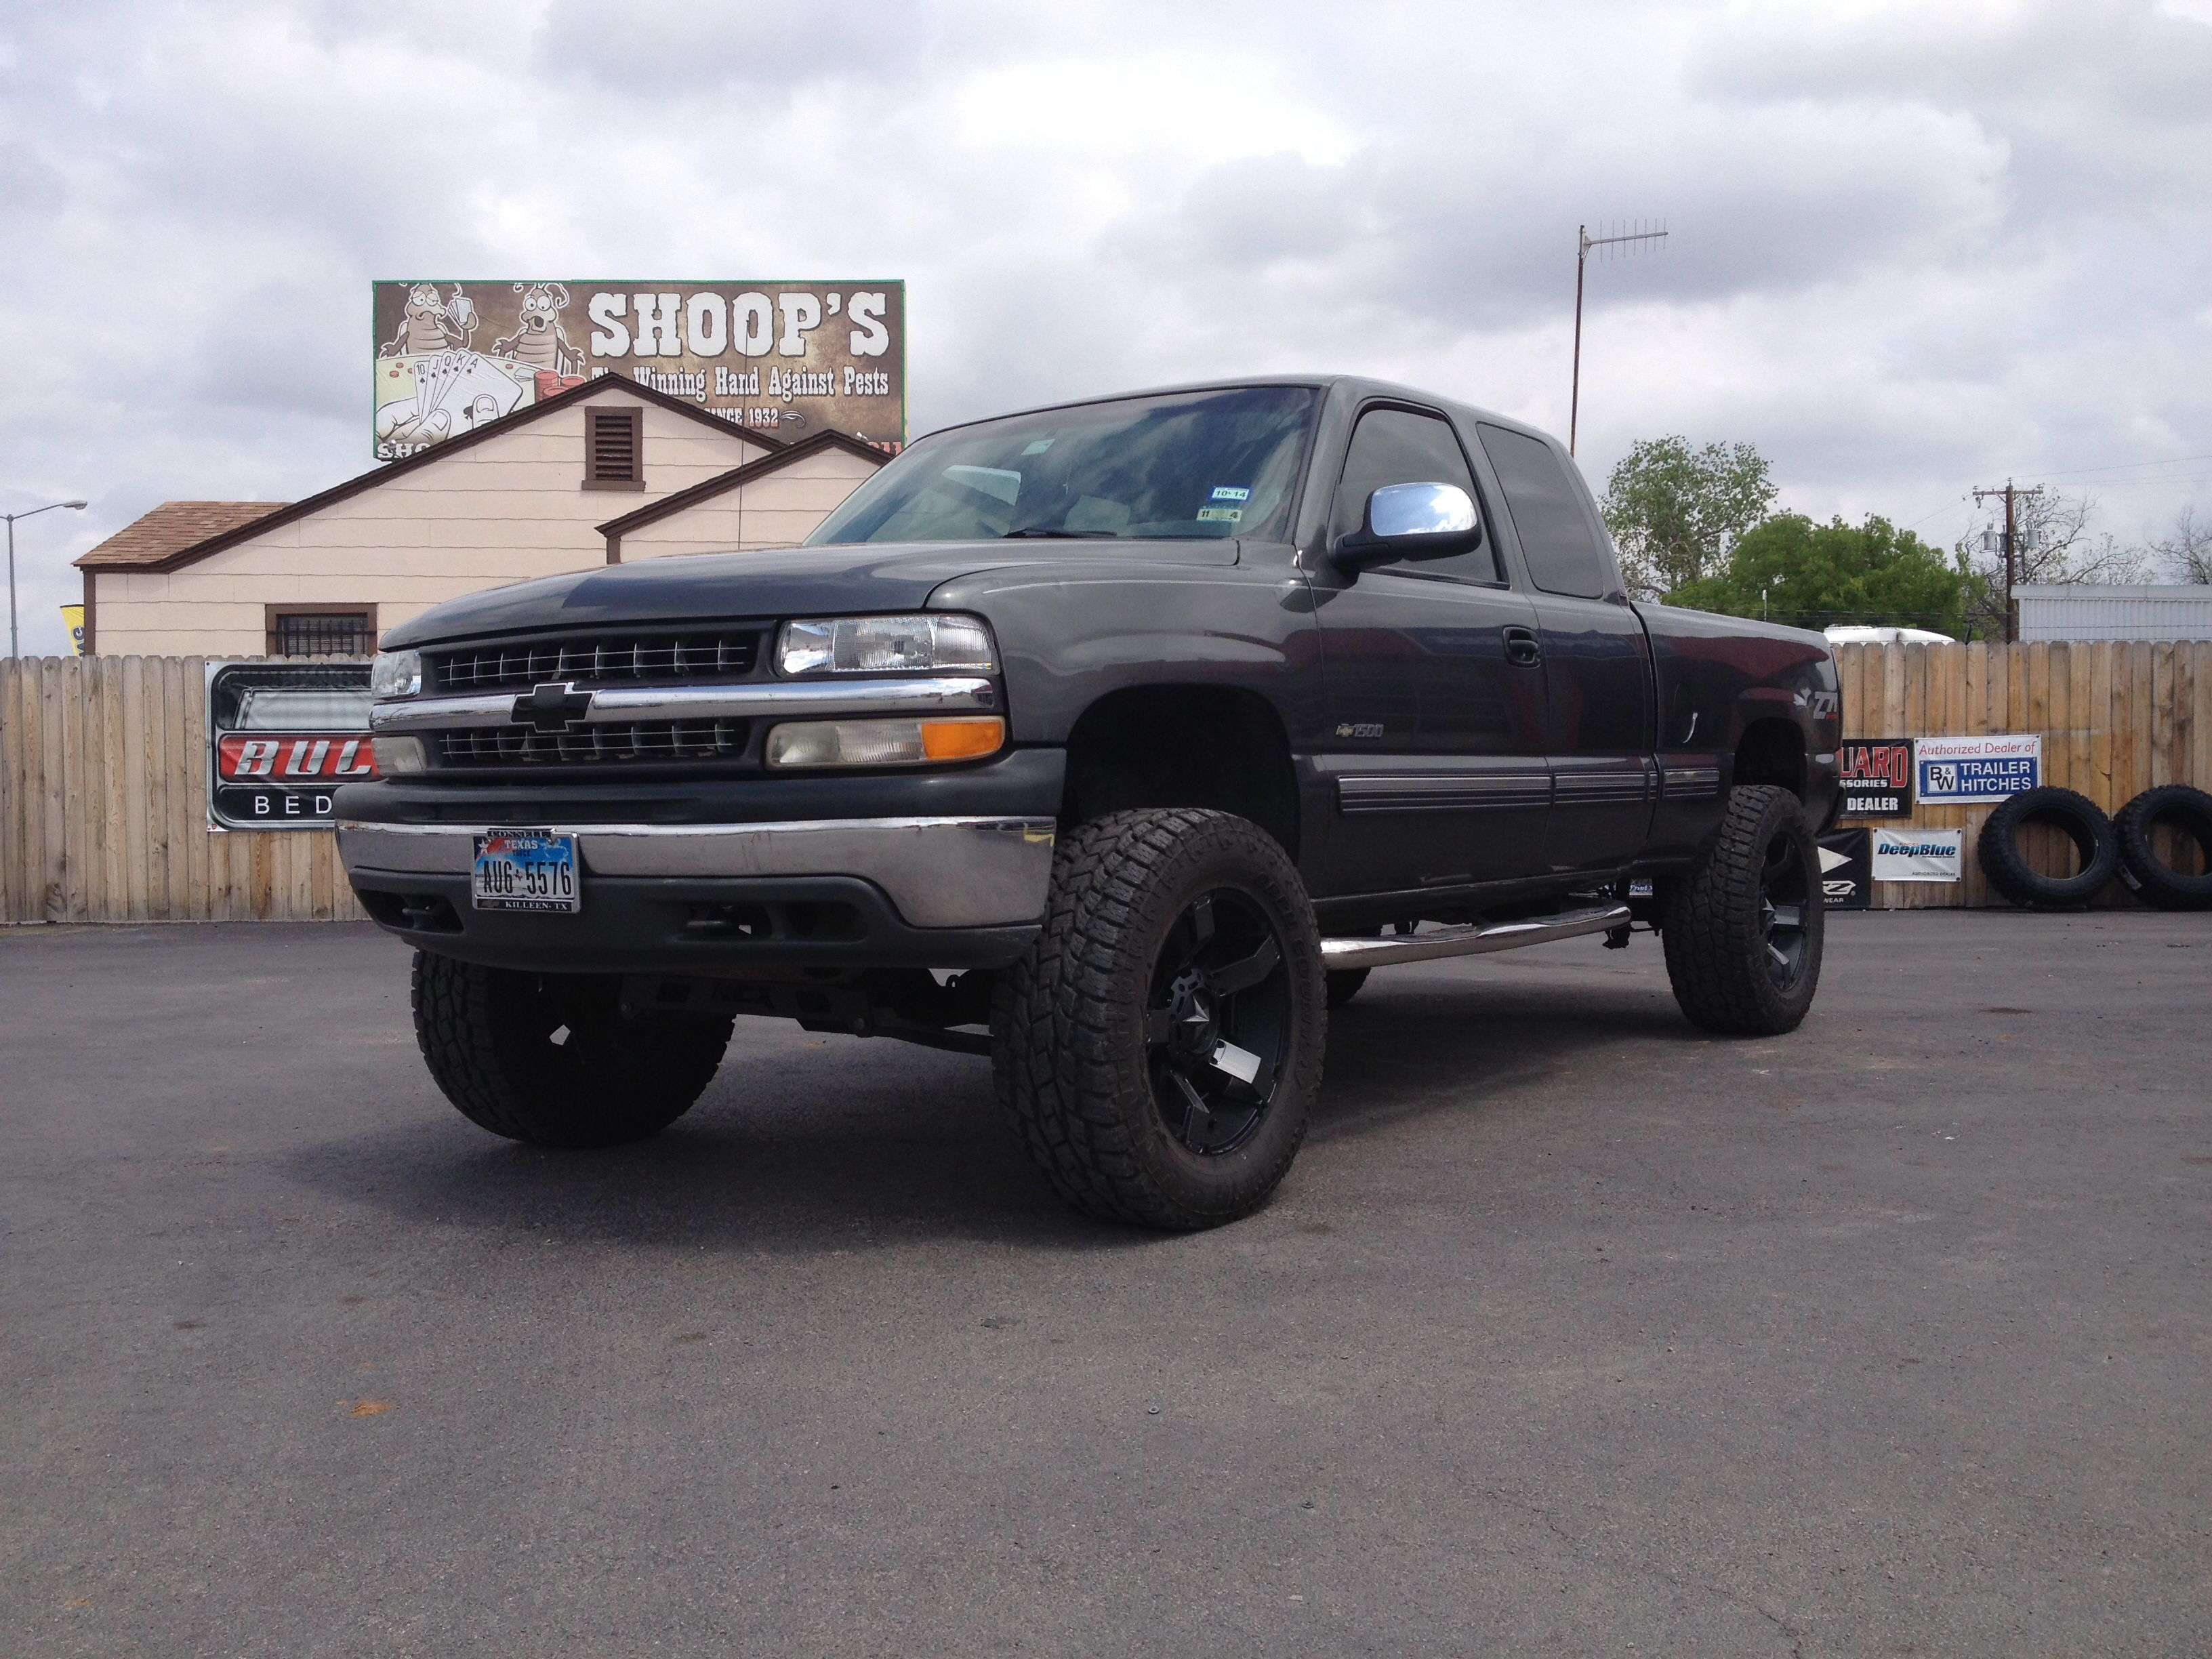 2001 chevrolet silverado z71 personal 6 rcx lift ntd 20 rockstar 2s w paint to match. Black Bedroom Furniture Sets. Home Design Ideas